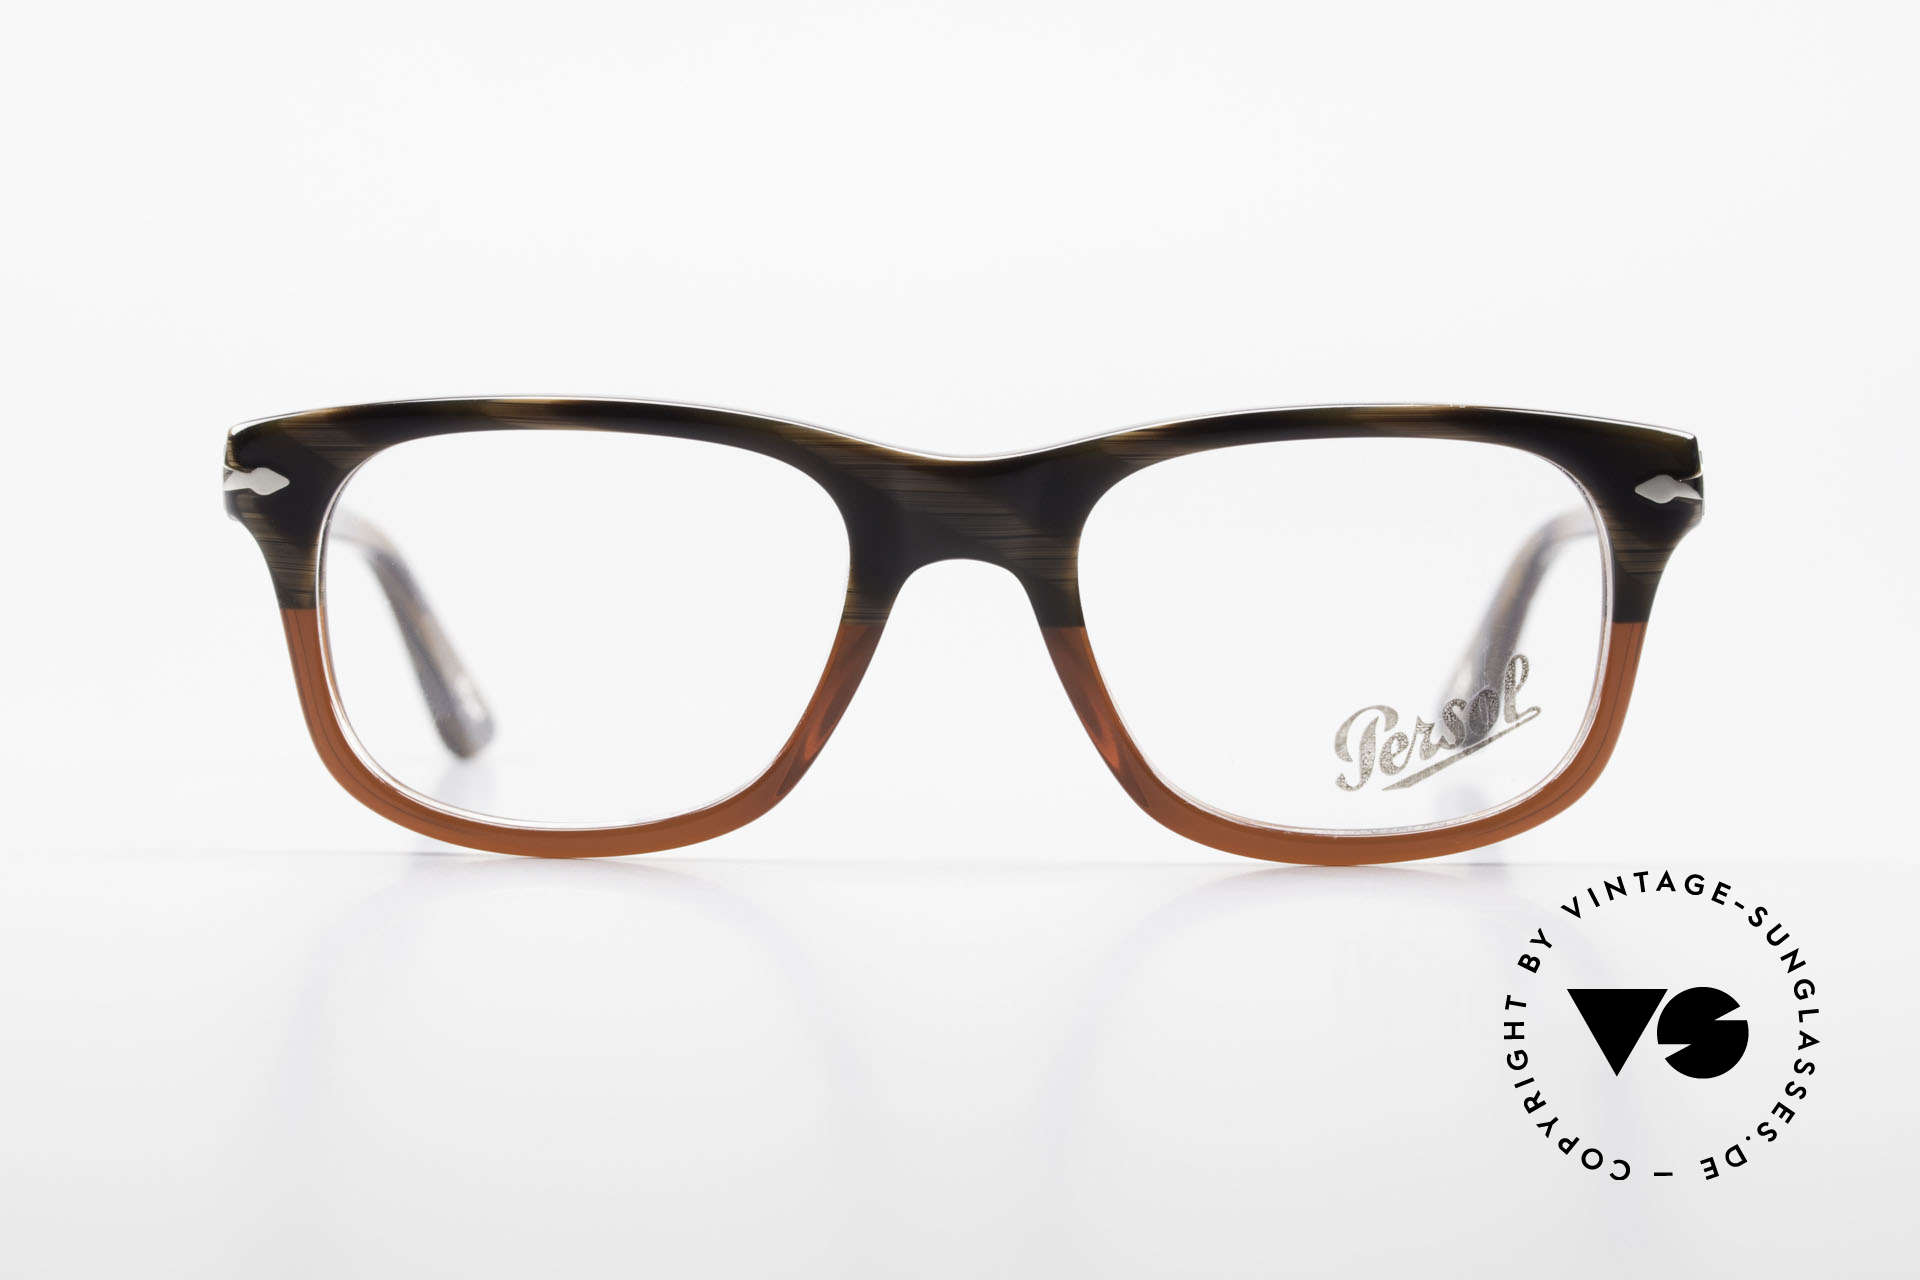 Persol 3029 Small Persol Eyeglasses Unisex, great pattern: root wood/brown & ruby-colored, Made for Men and Women